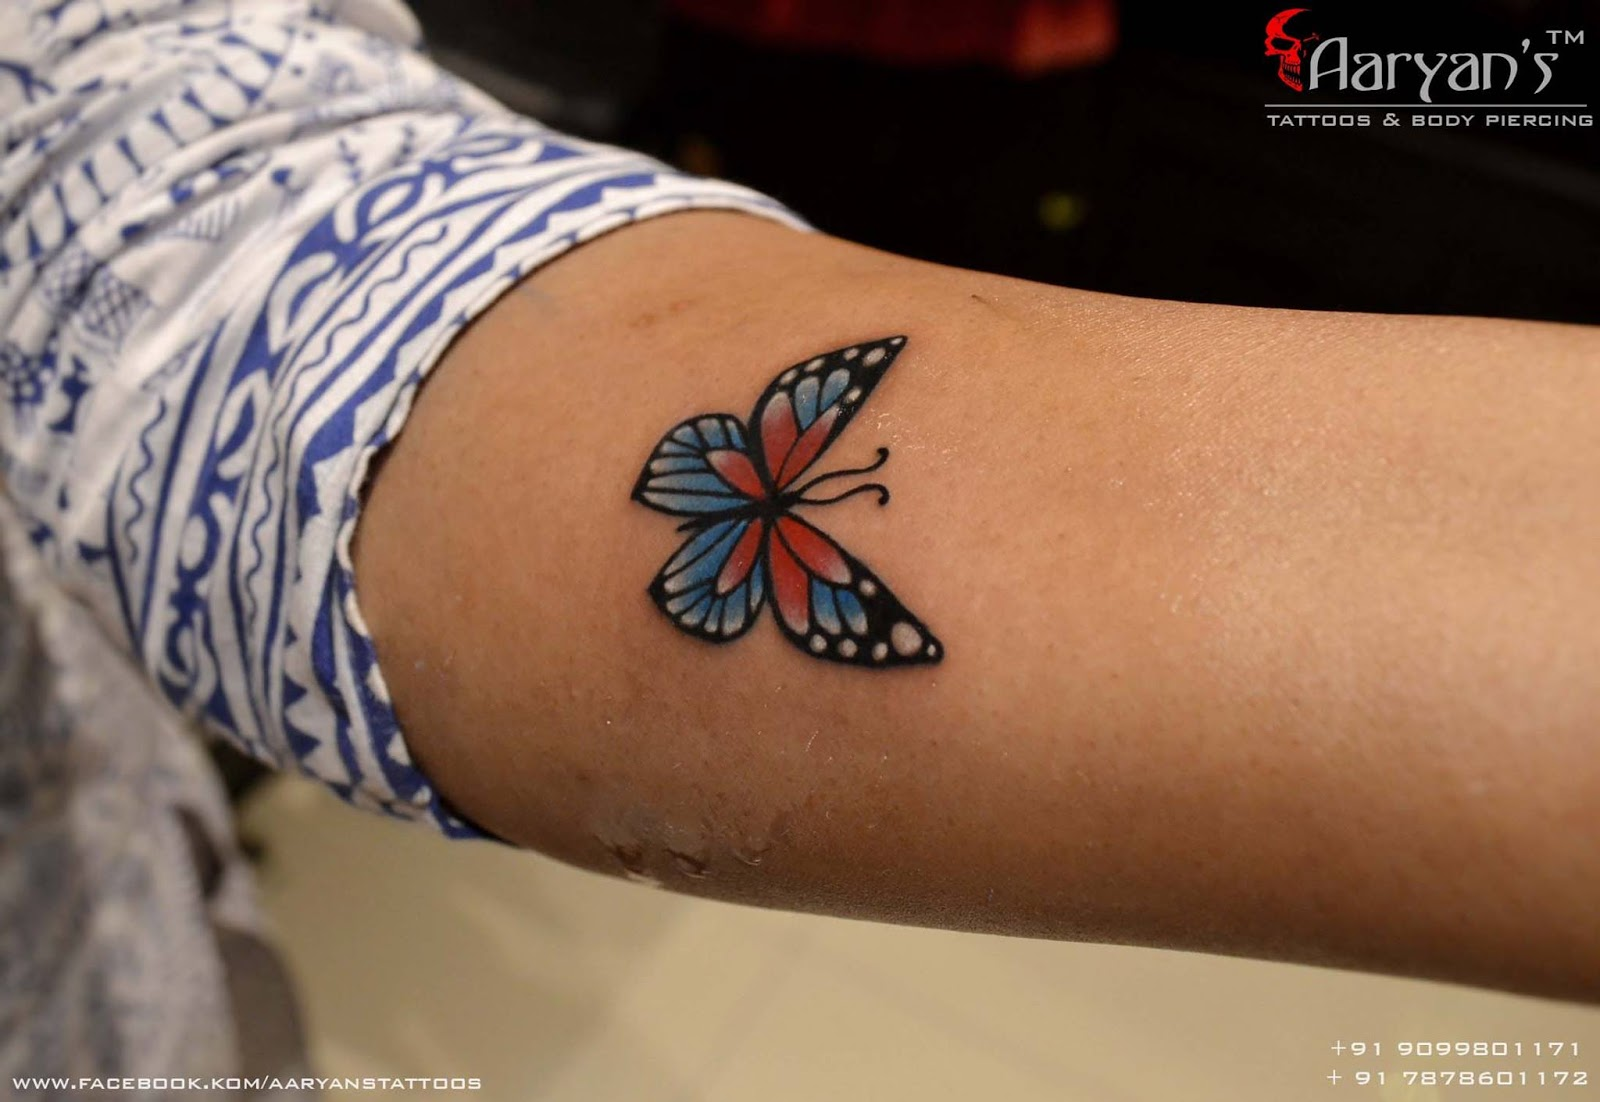 6697432ae Small Tattoos By Krunal Tattooist At Aaryan's Tattoos & Piercing